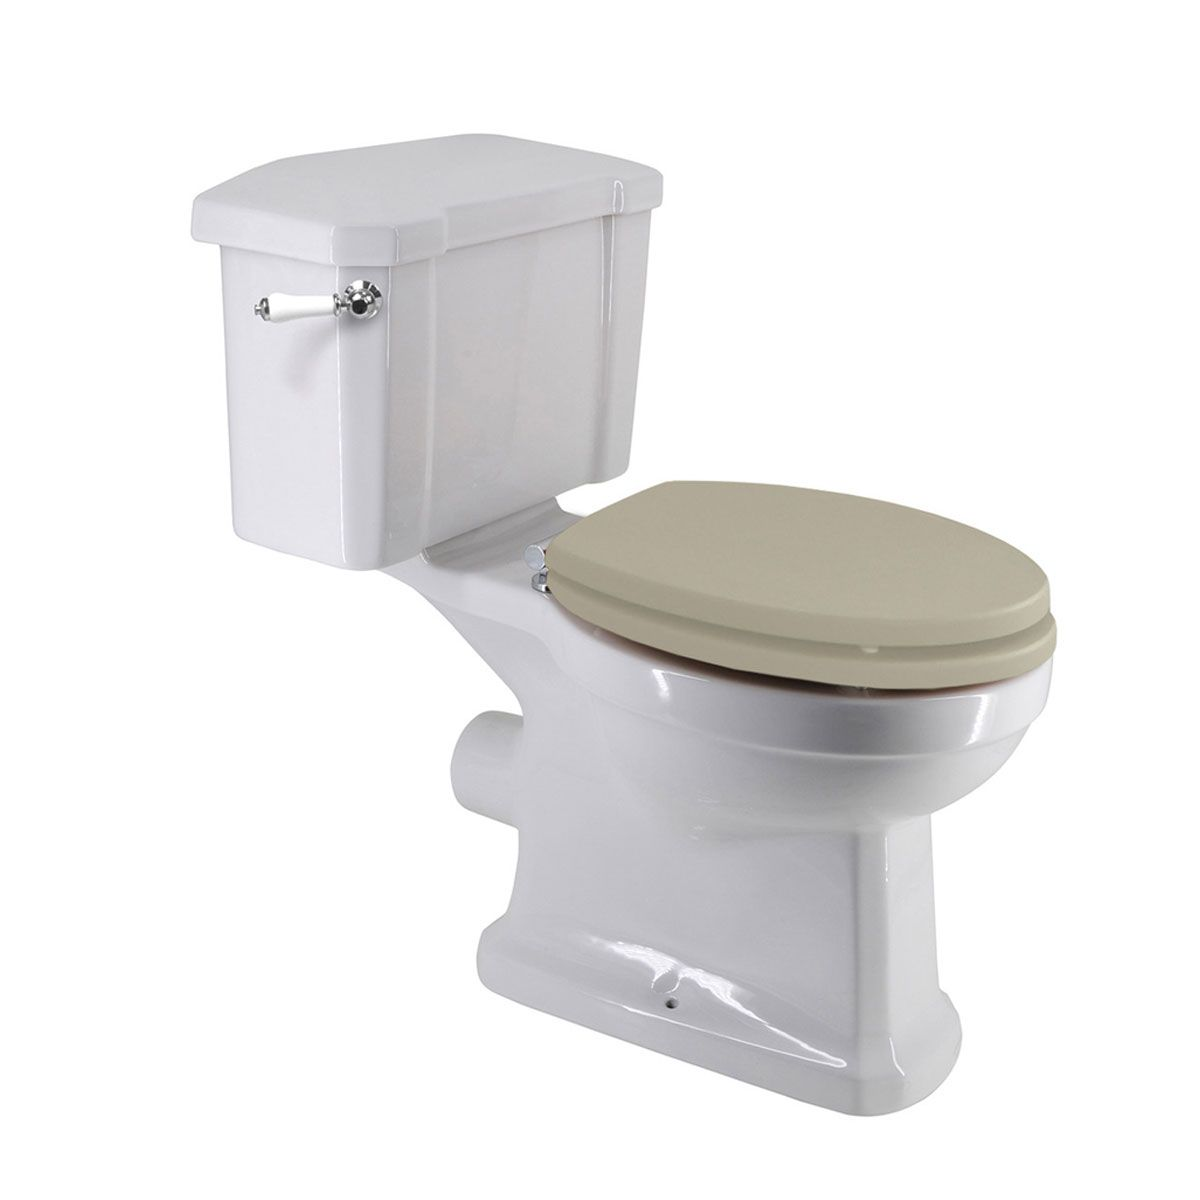 Frontline Holborn Close Coupled Toilet with White Wooden Soft Close Toilet Seat